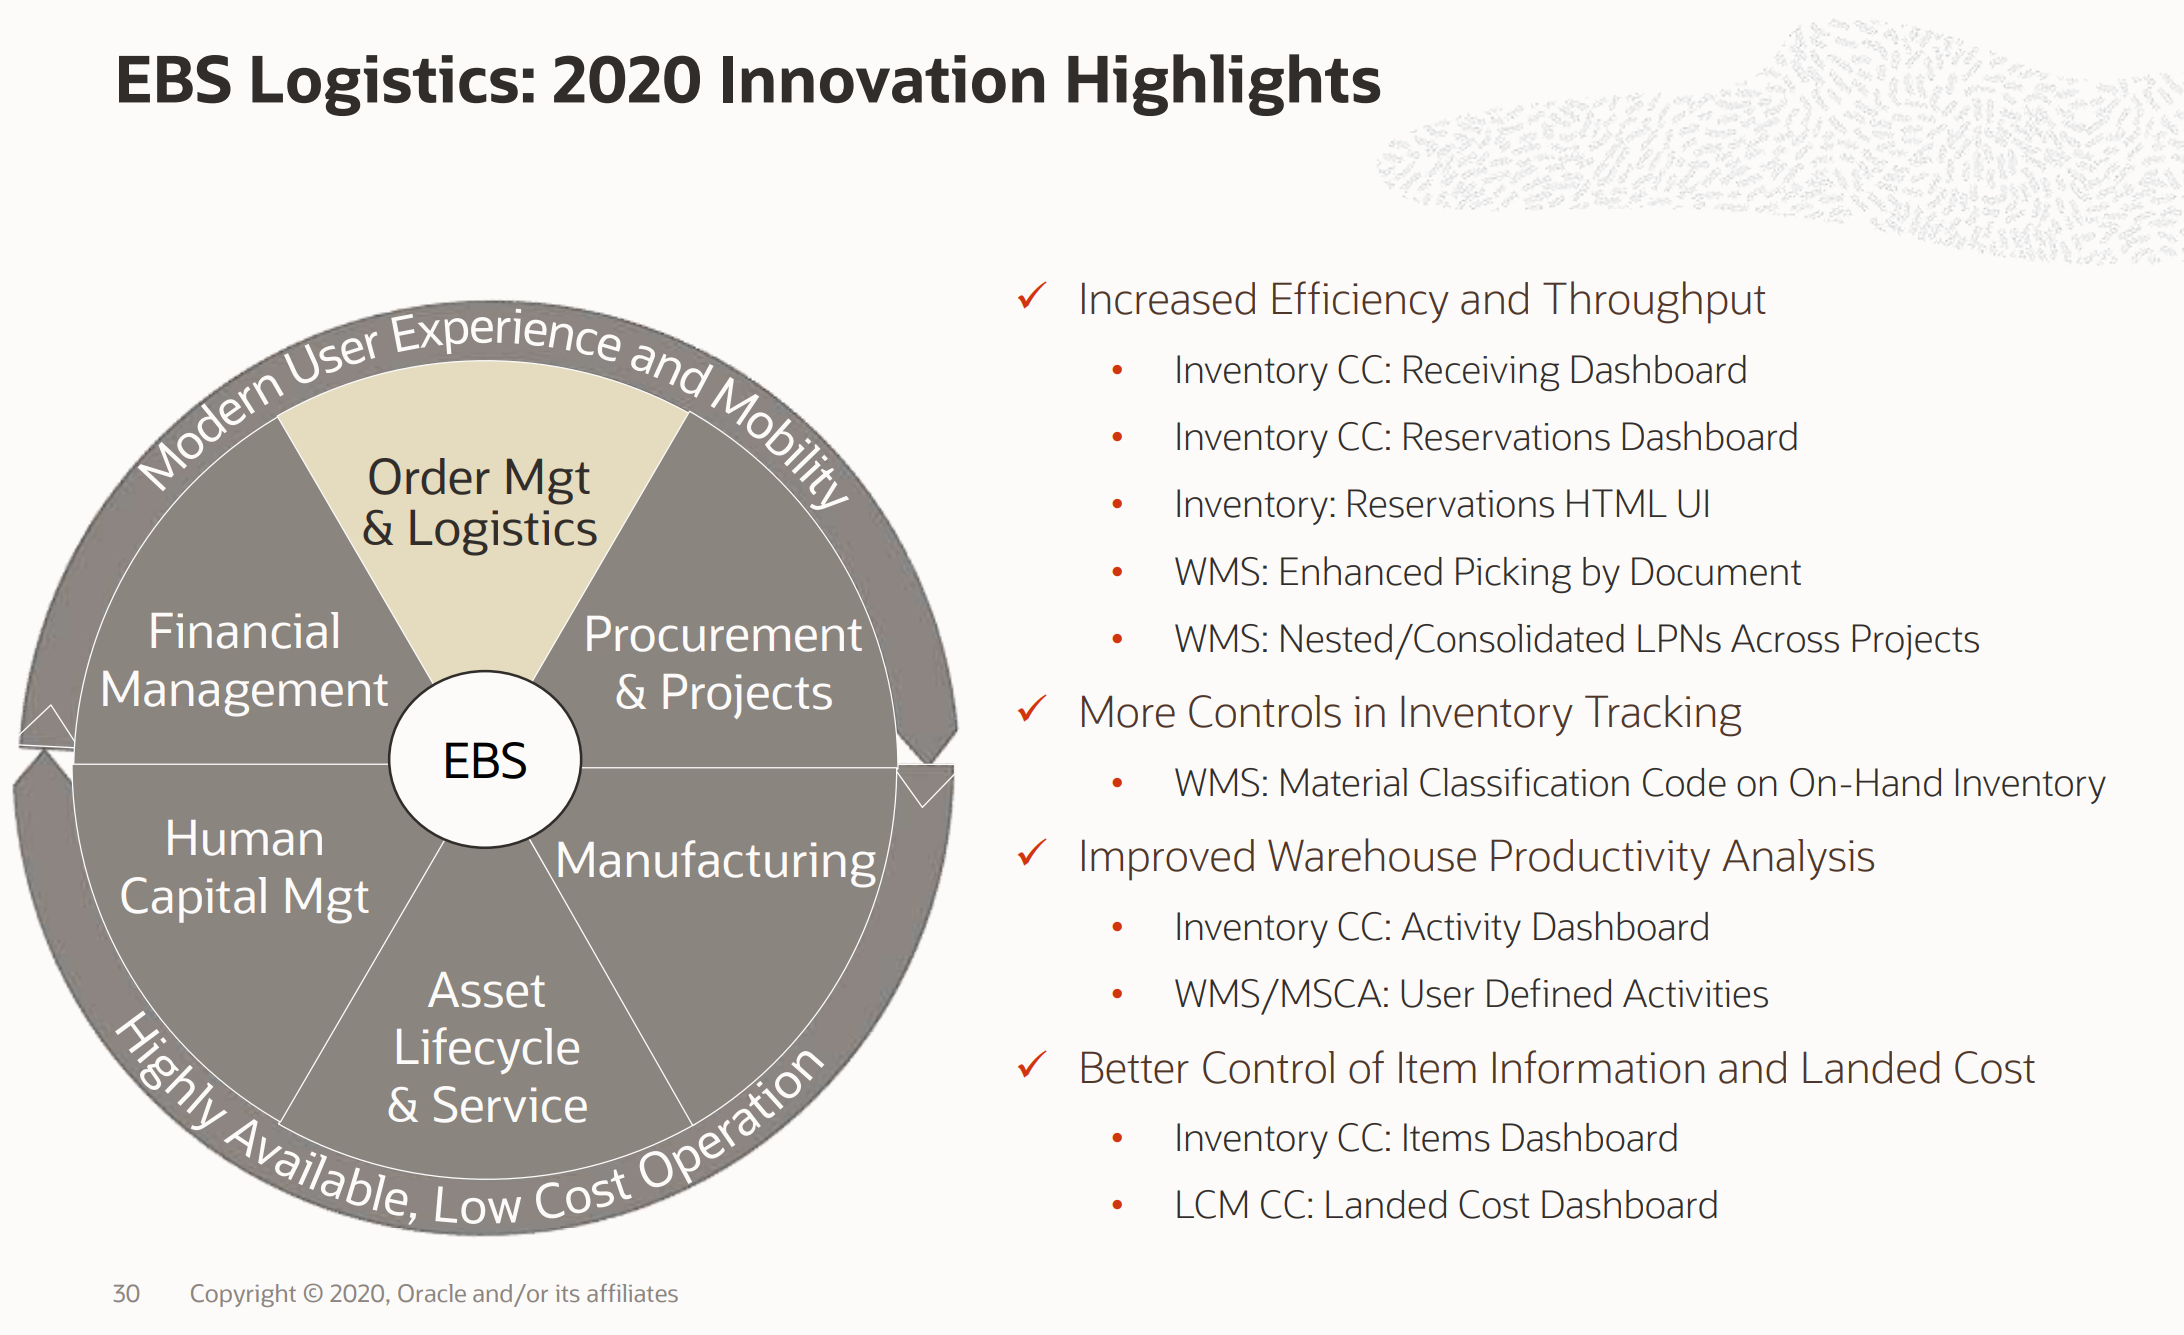 EBS Logistics 2020 Innovation Highlights